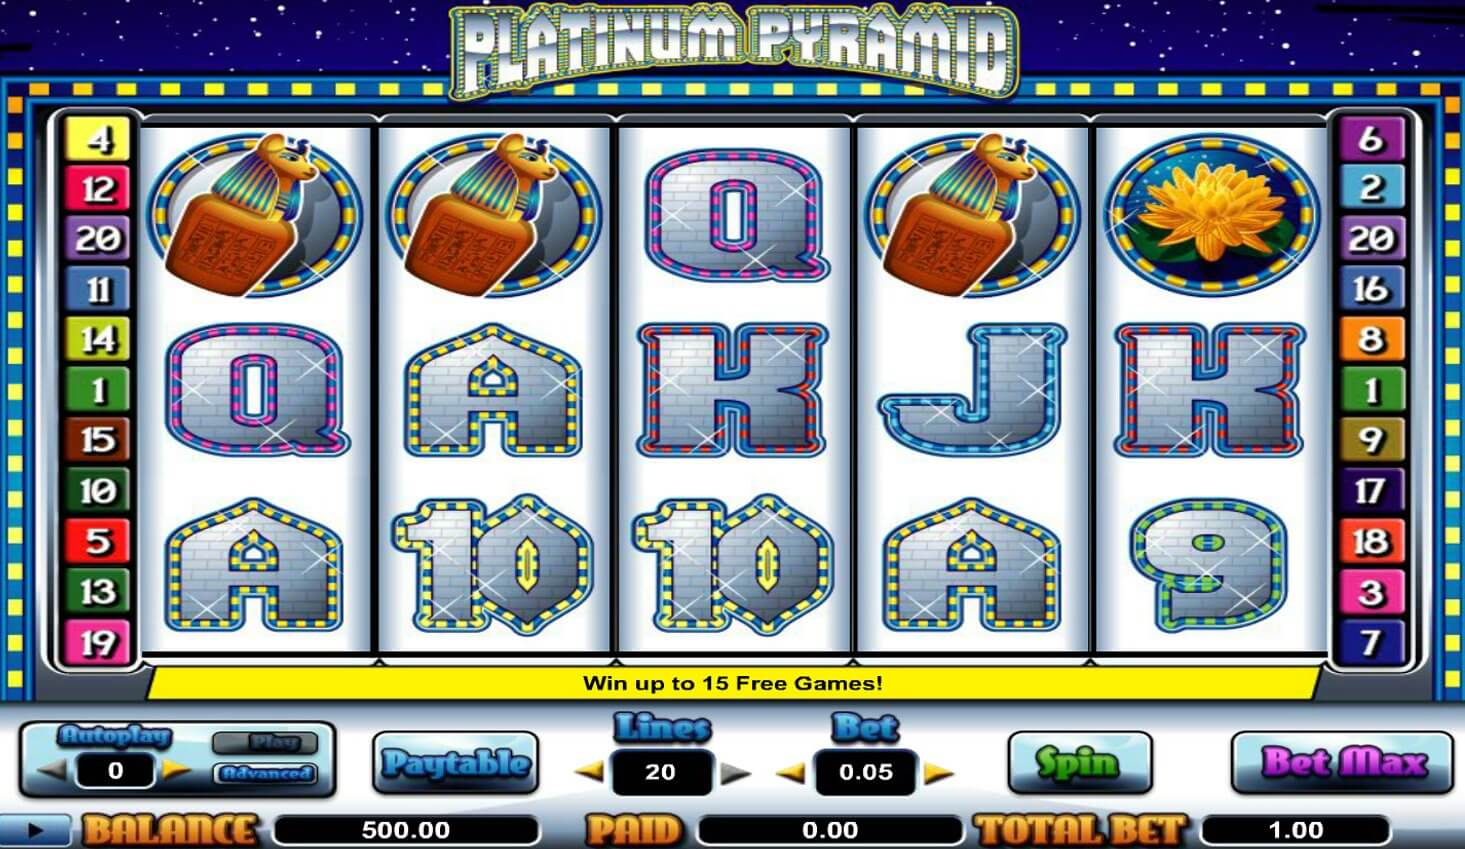 Cryptologic's Platinum Pyramid Online Slots Reviewed